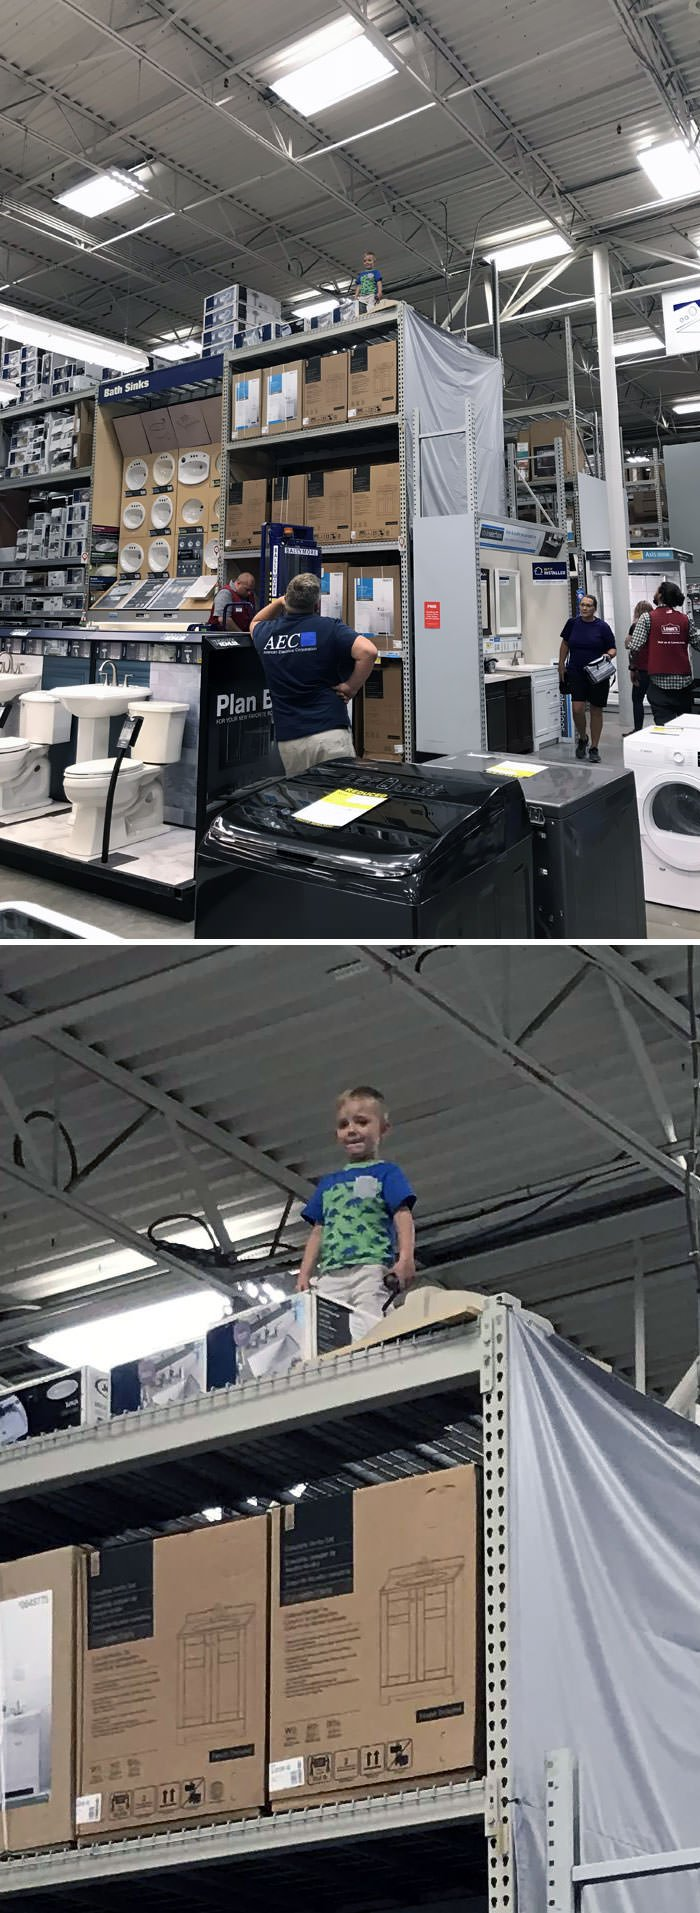 I Heard This Kid Yelling For His Dad At Lowe's, I Went Looking For Him And...